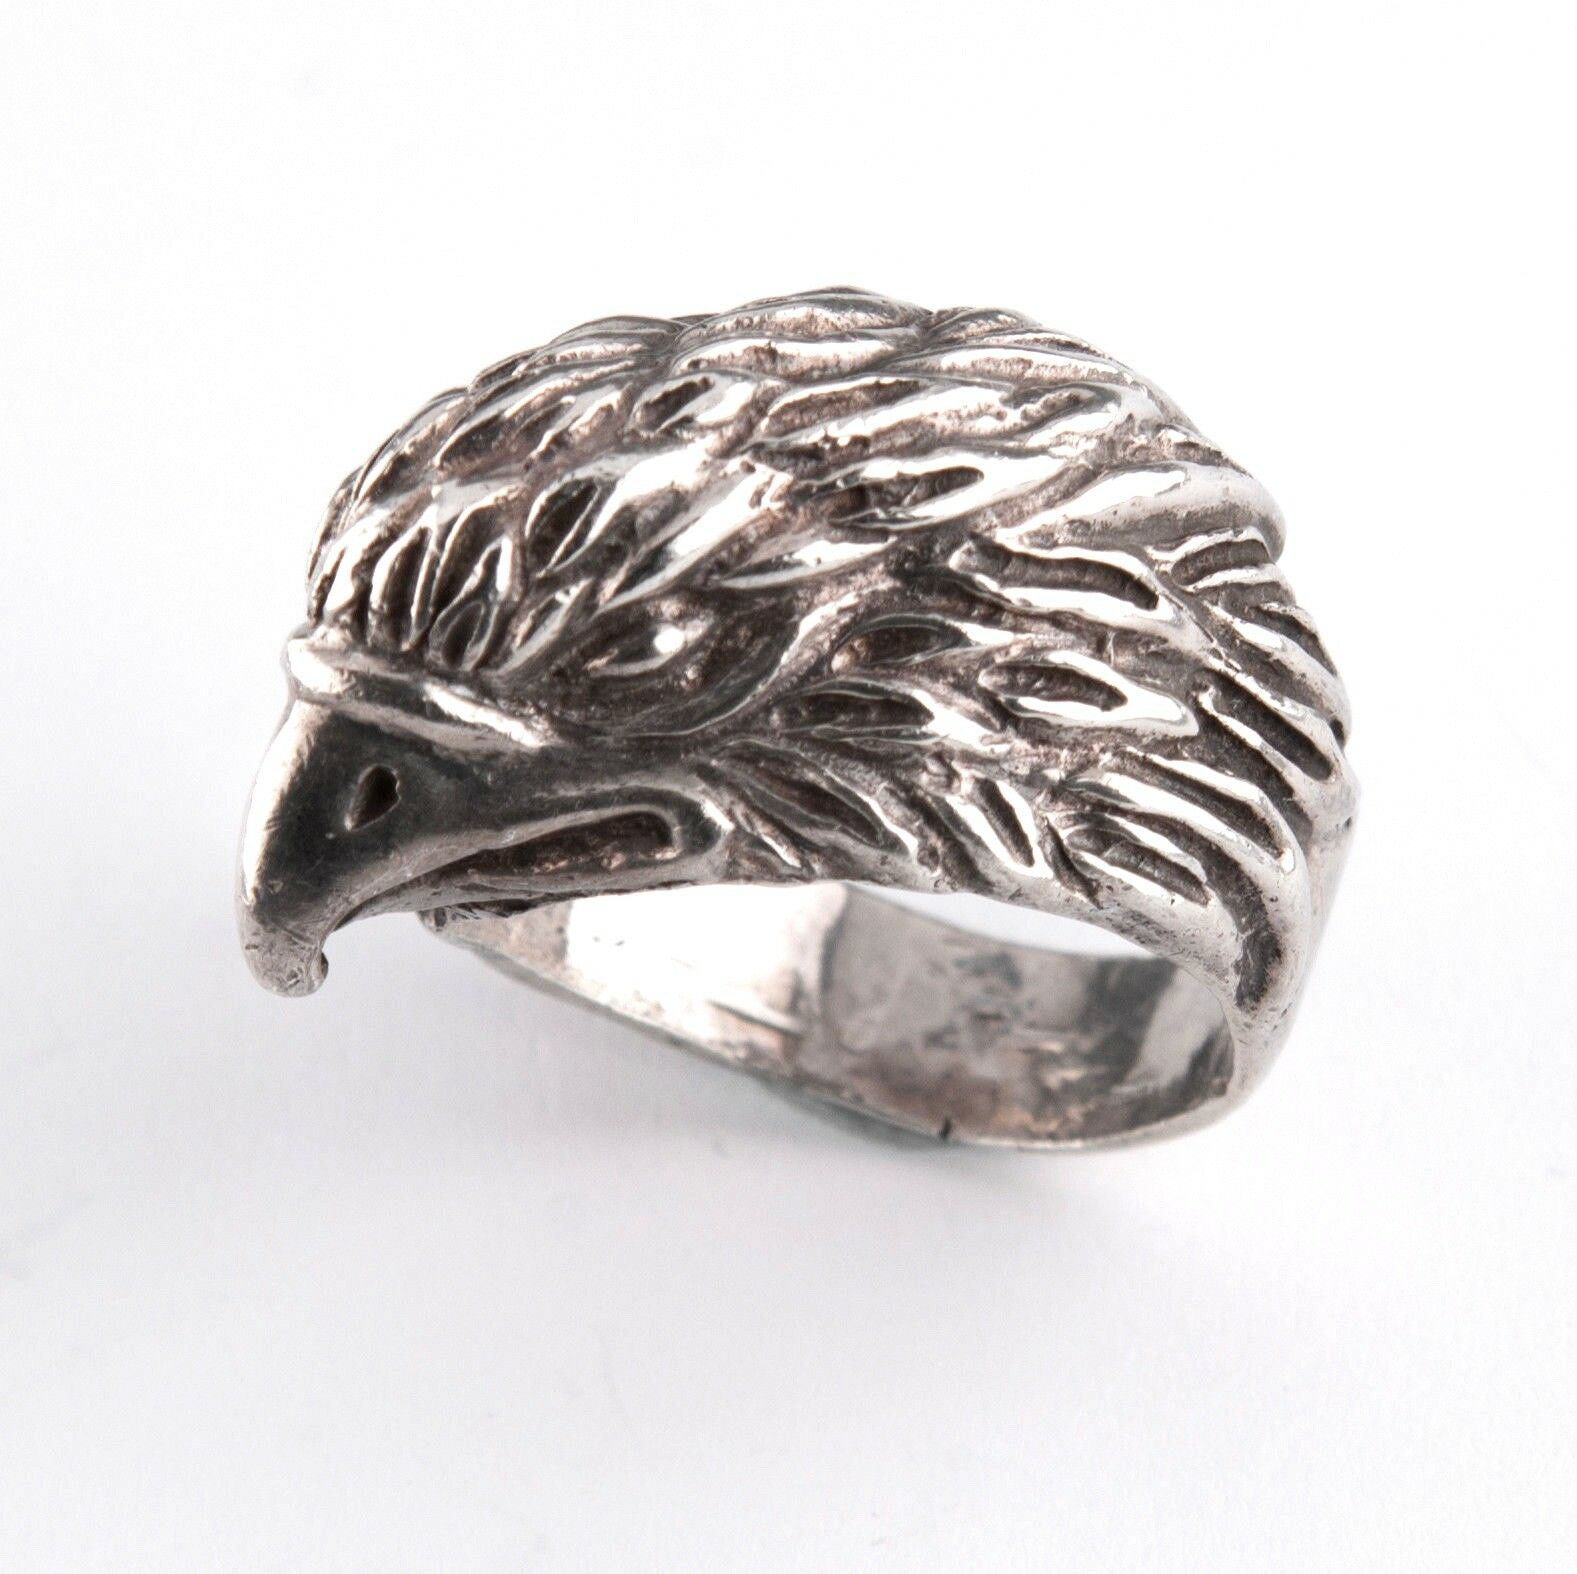 .925 Eagle Head Diamond Cut engraved style ring 18.9g size 10.5